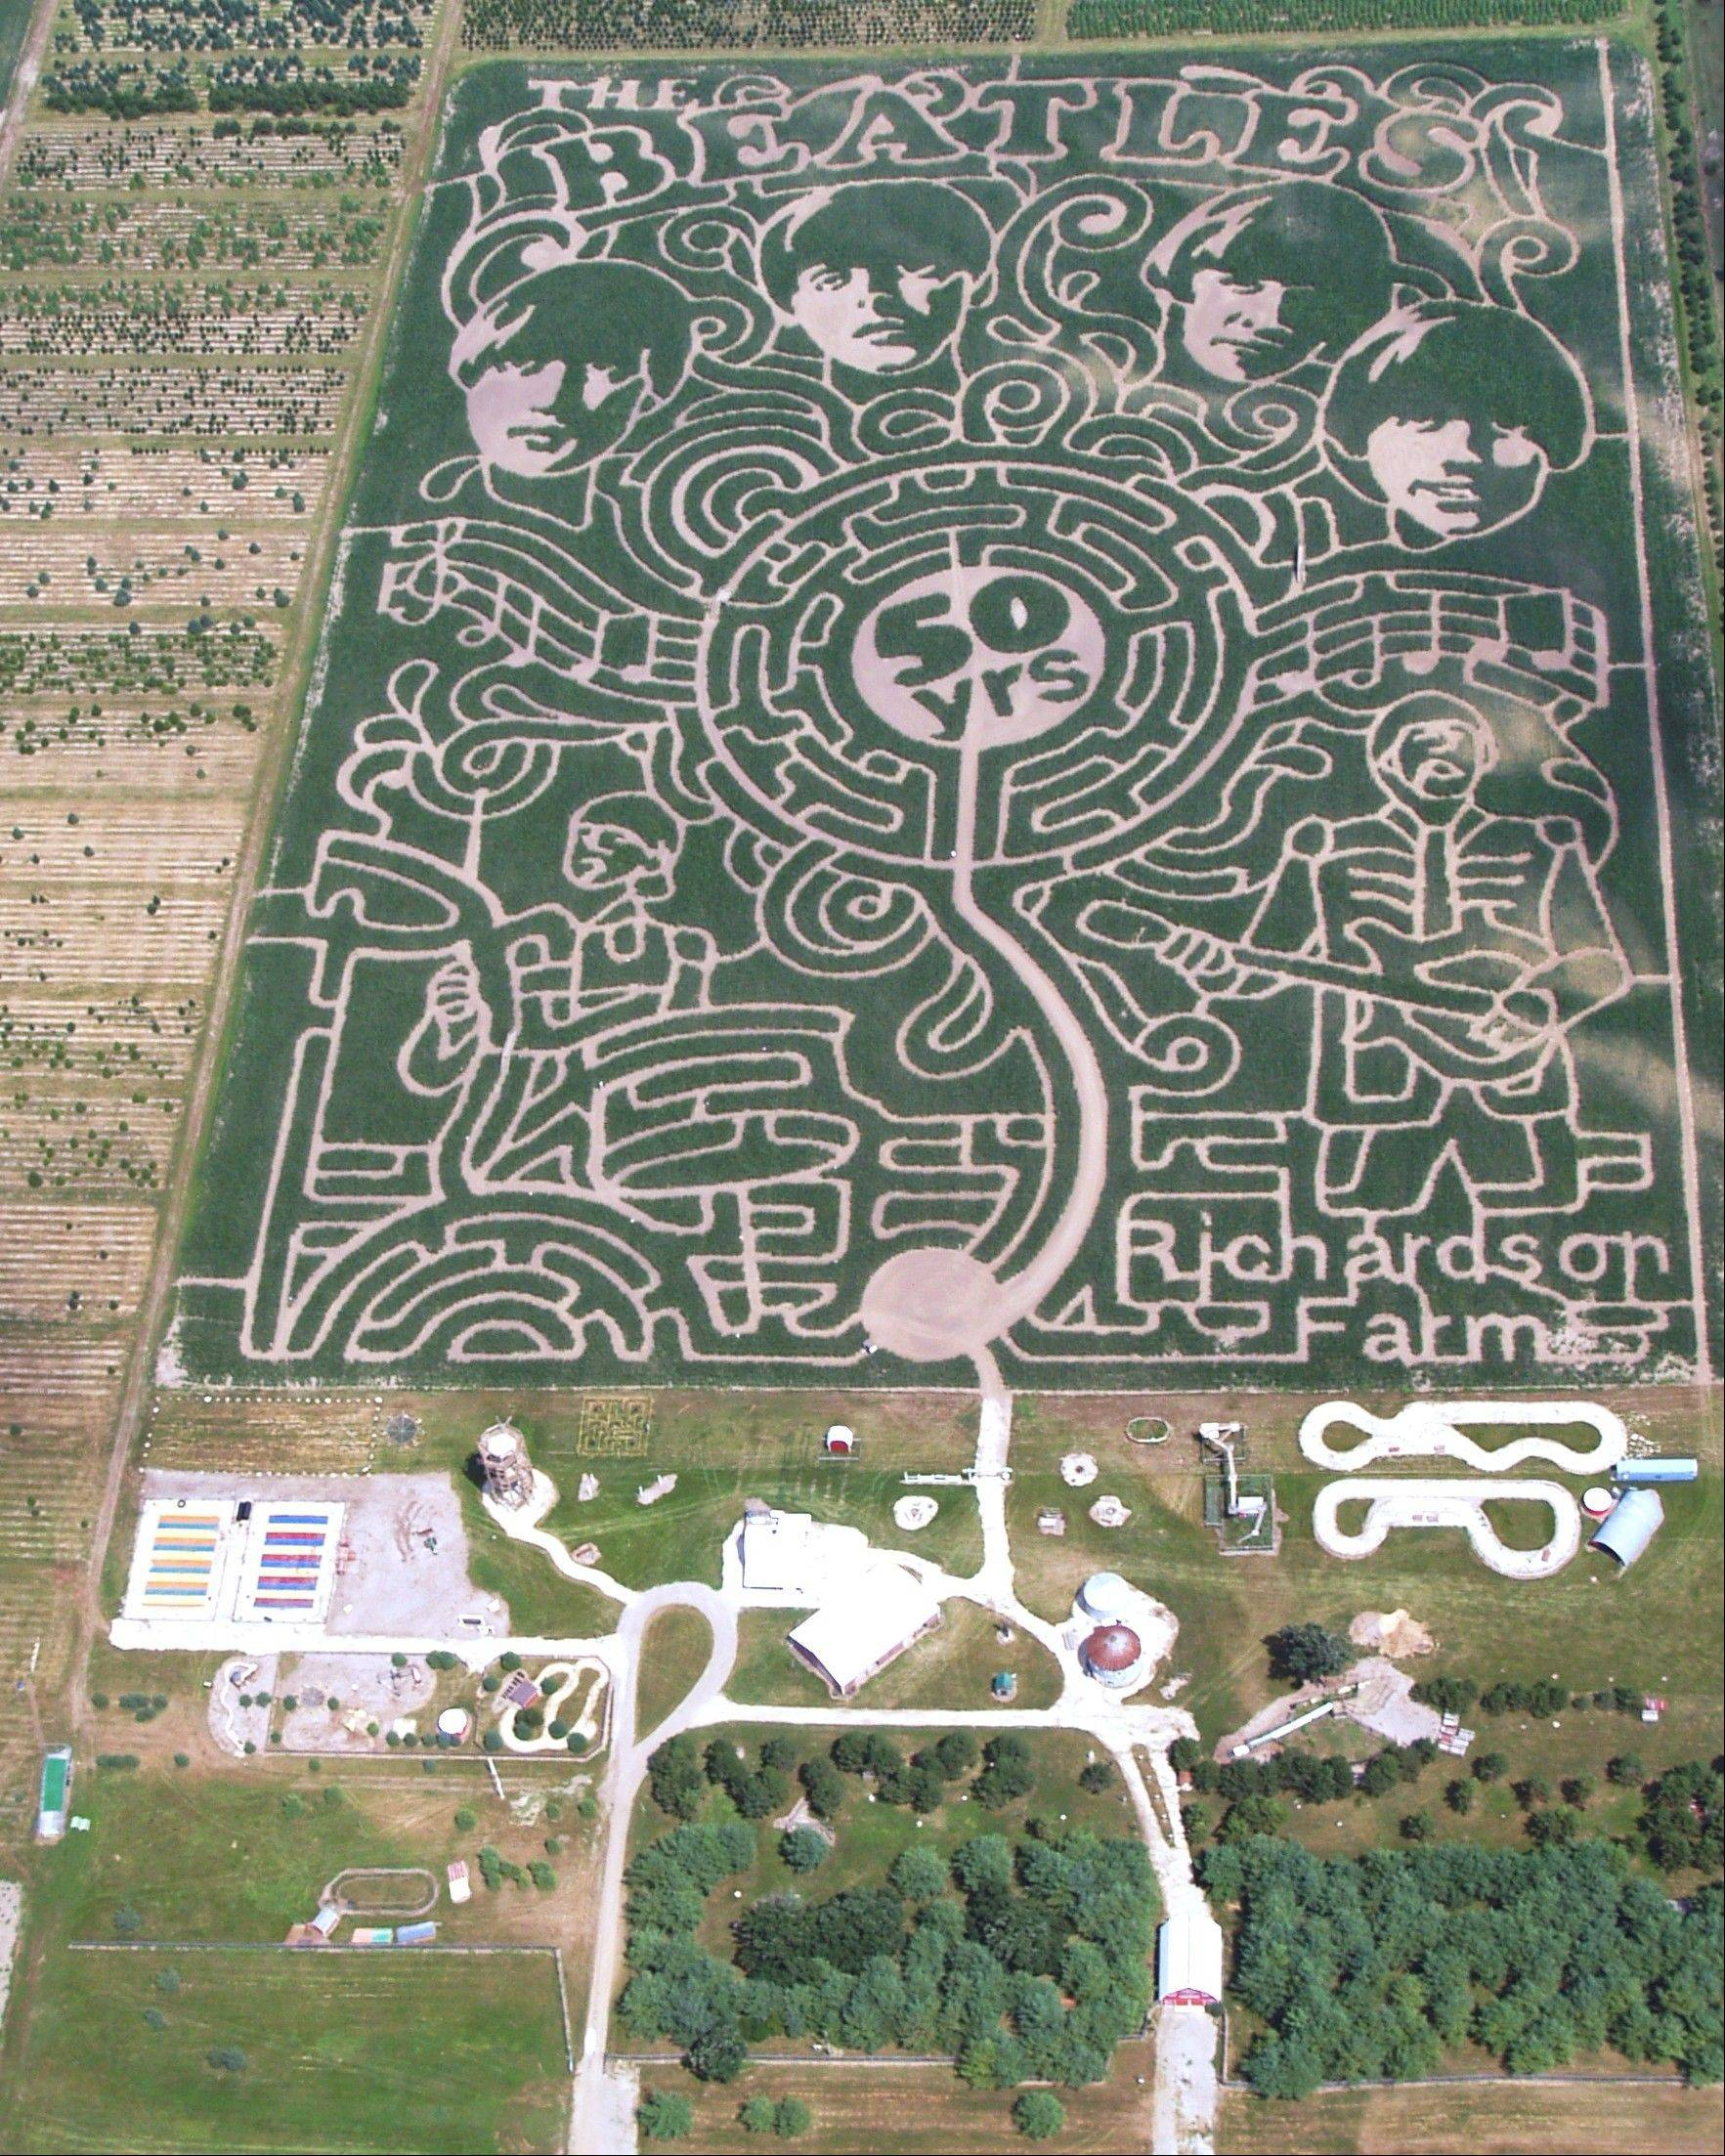 This year, the maze at Richardson Farm pays tribute to the 50th anniversary of the Beatles' first album.